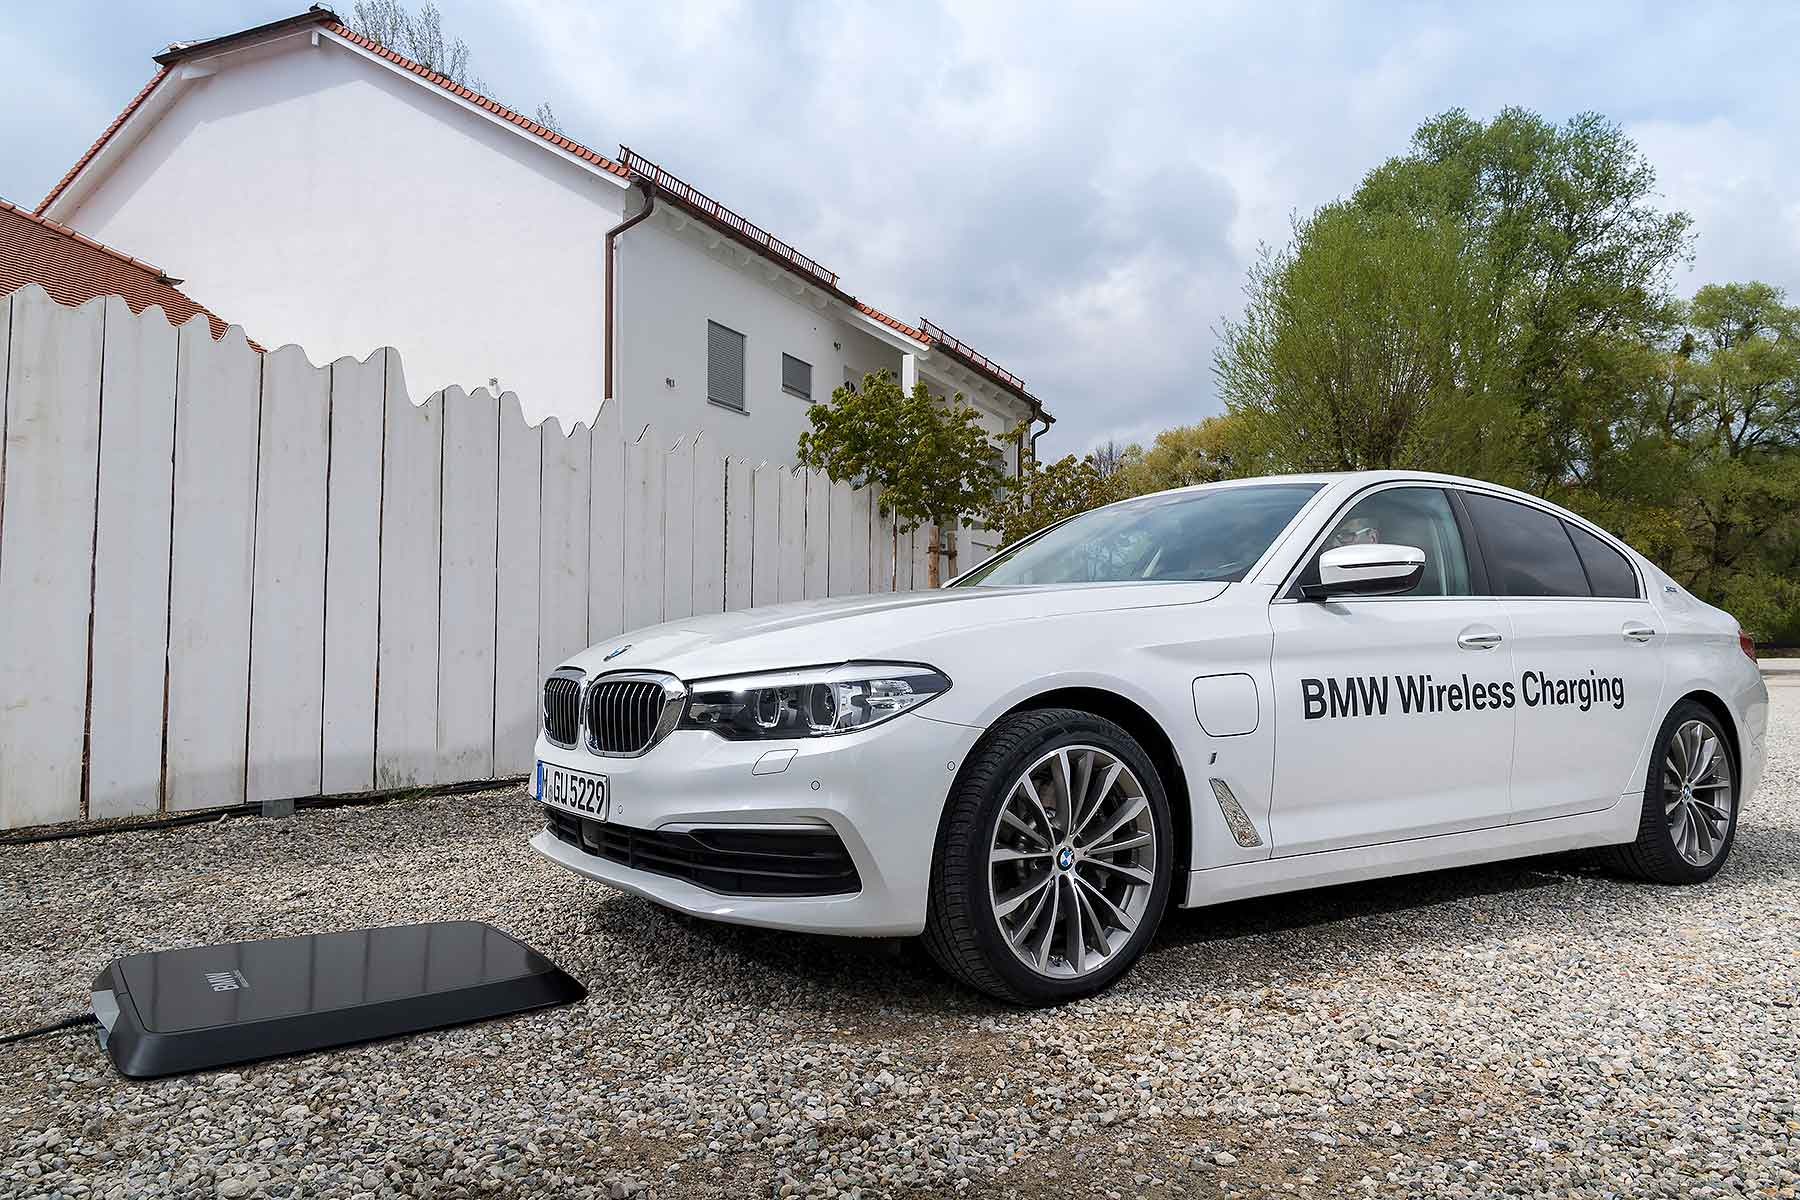 Bmw Launches World First Wireless Charging For Electric Cars